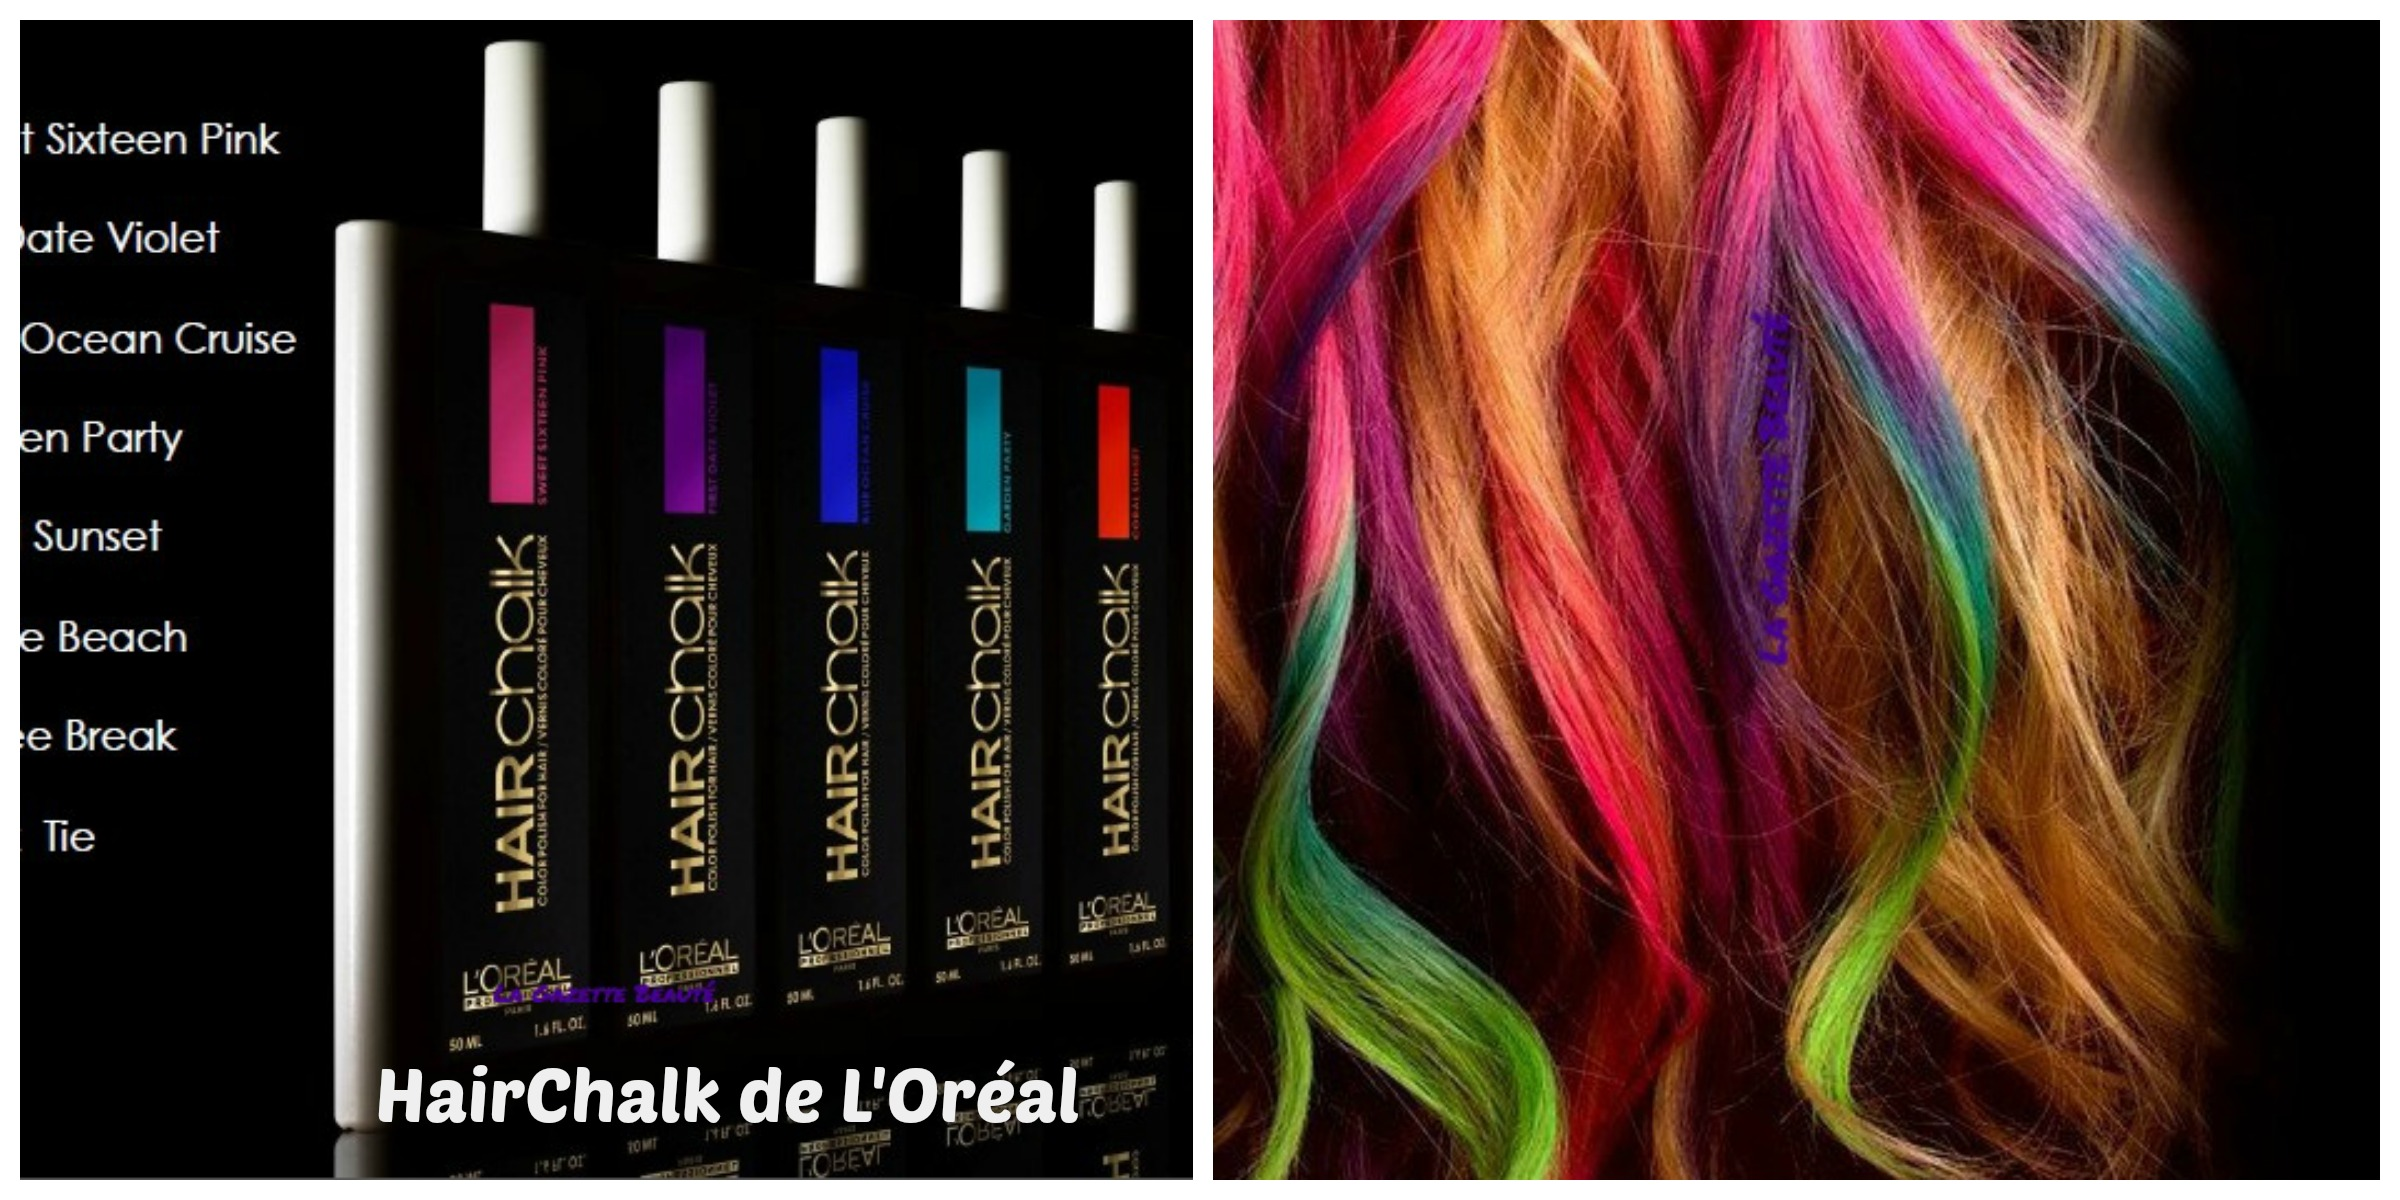 25 le flacon dune couleur - Coloration Cheveux Craie